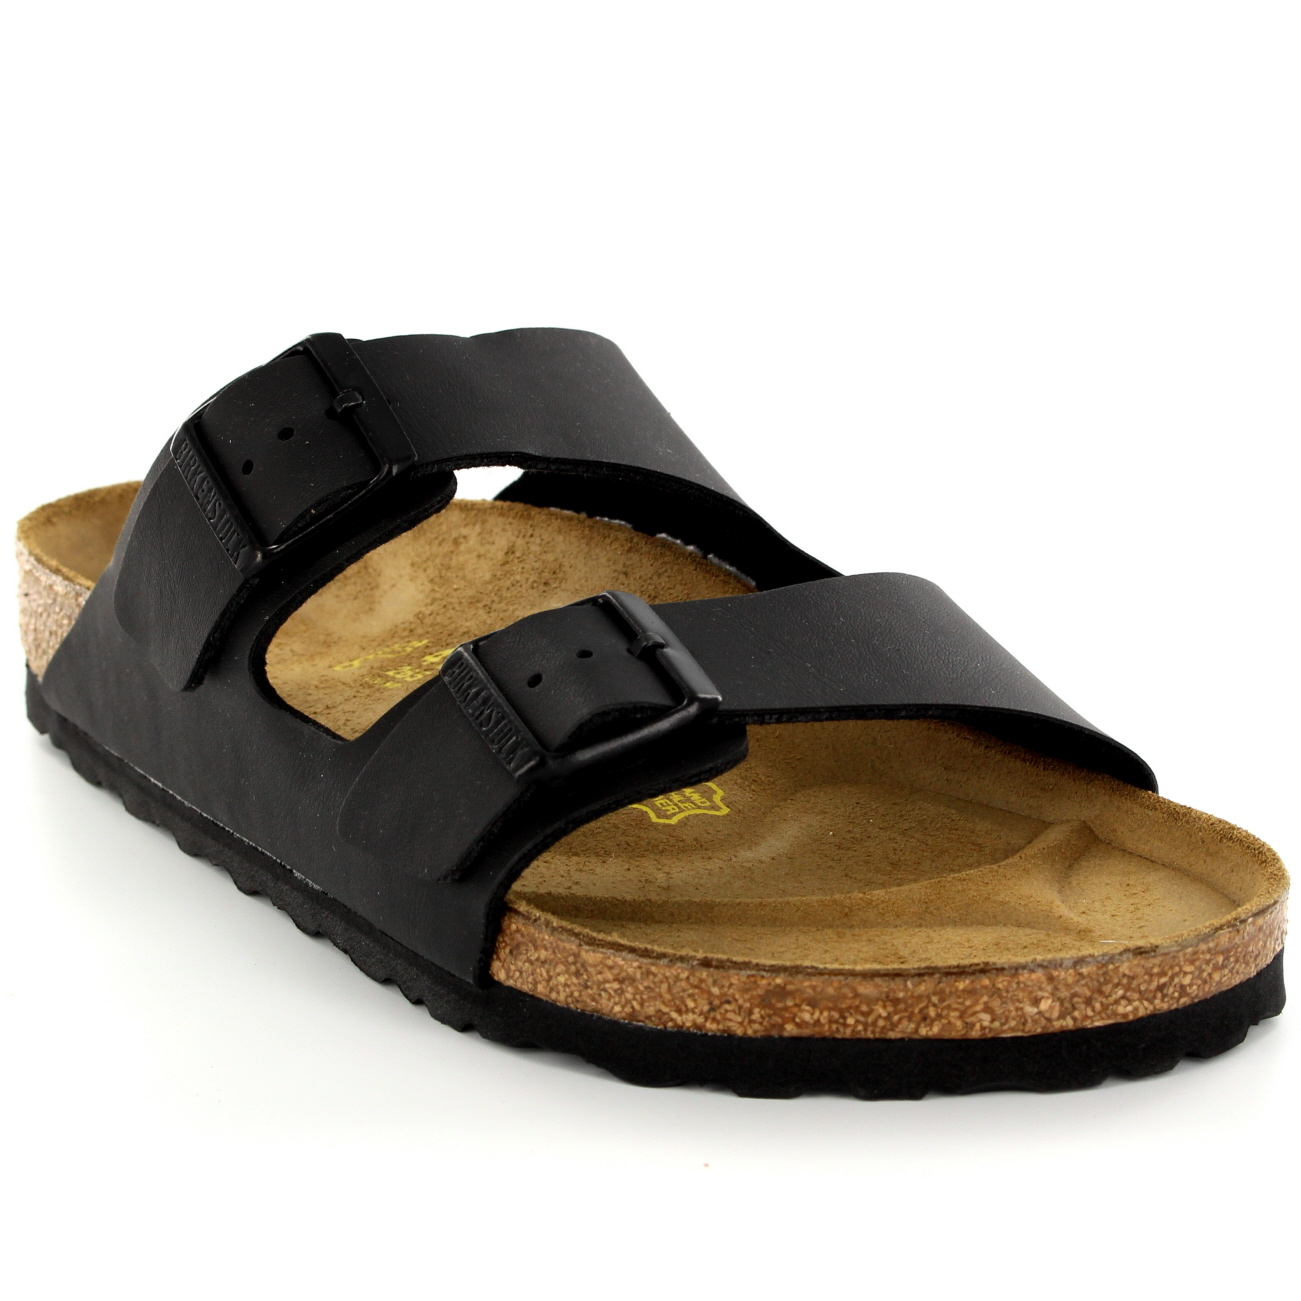 Womens Birkenstock Arizona Slip On Buckle Summer Holiday